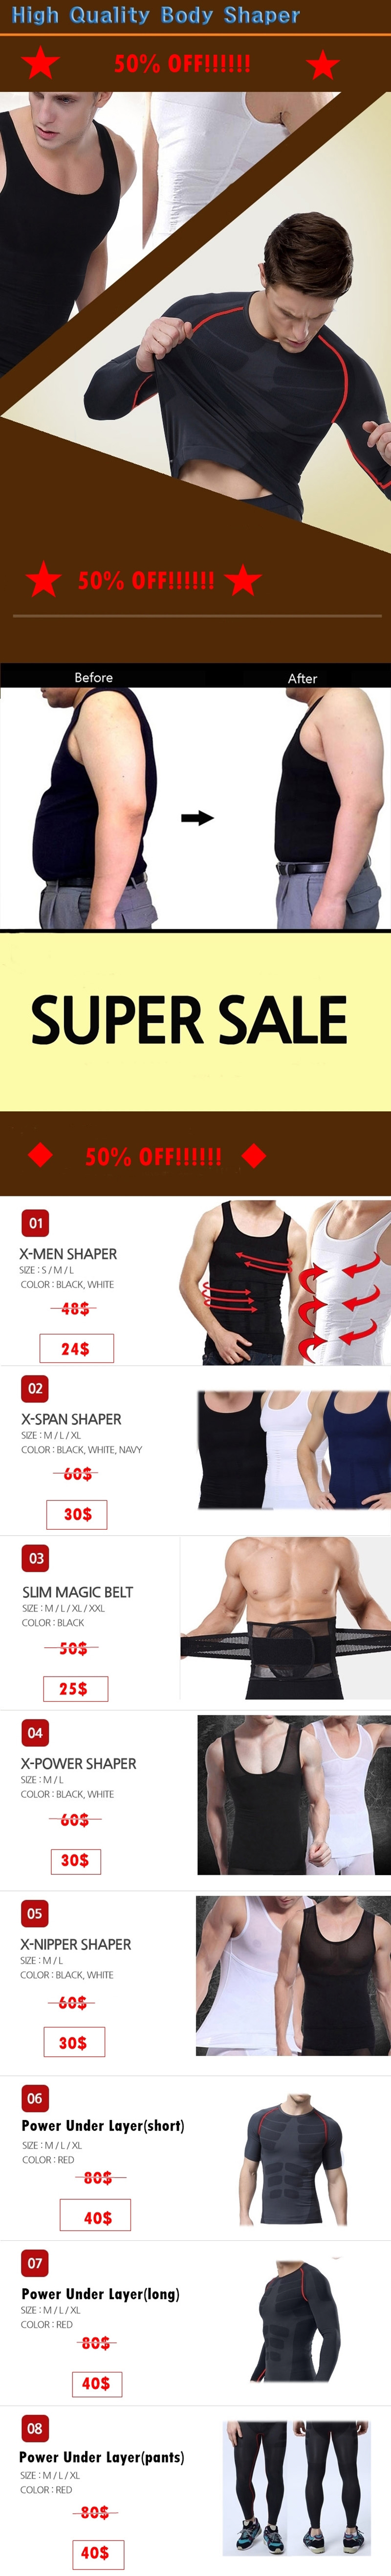 Every Need Want Day Slim N Lift Body Shaping For Man 6 Pack Abs Men Waist Sculpting Shapewear Undergarment Shaper Slimming Vest Tank Singlet